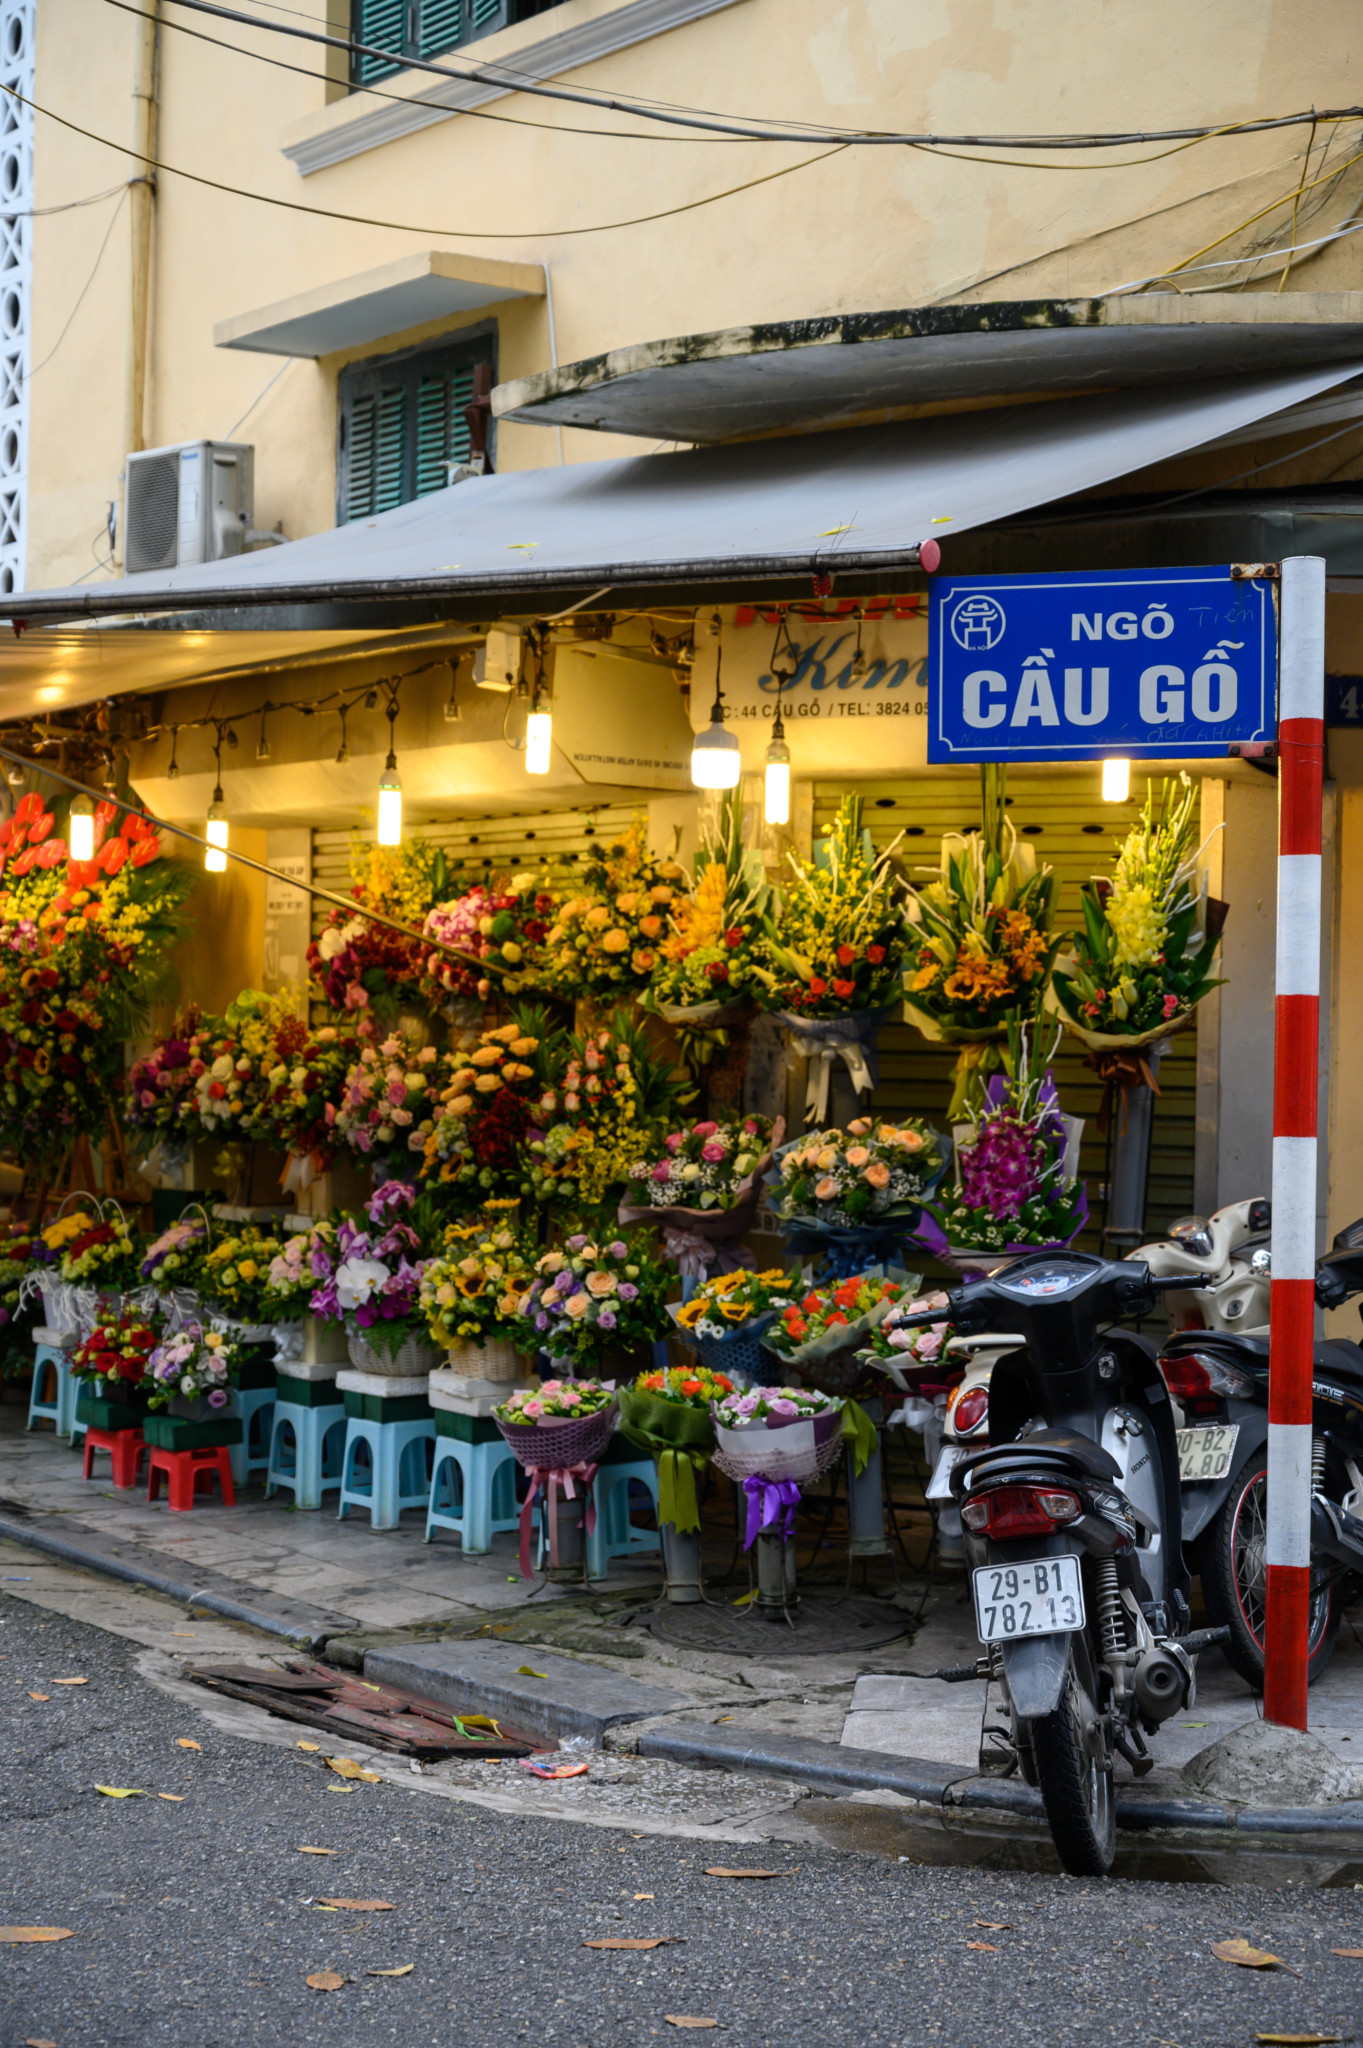 Blumenladen in der Altstadt Old Quarter in Vietnam